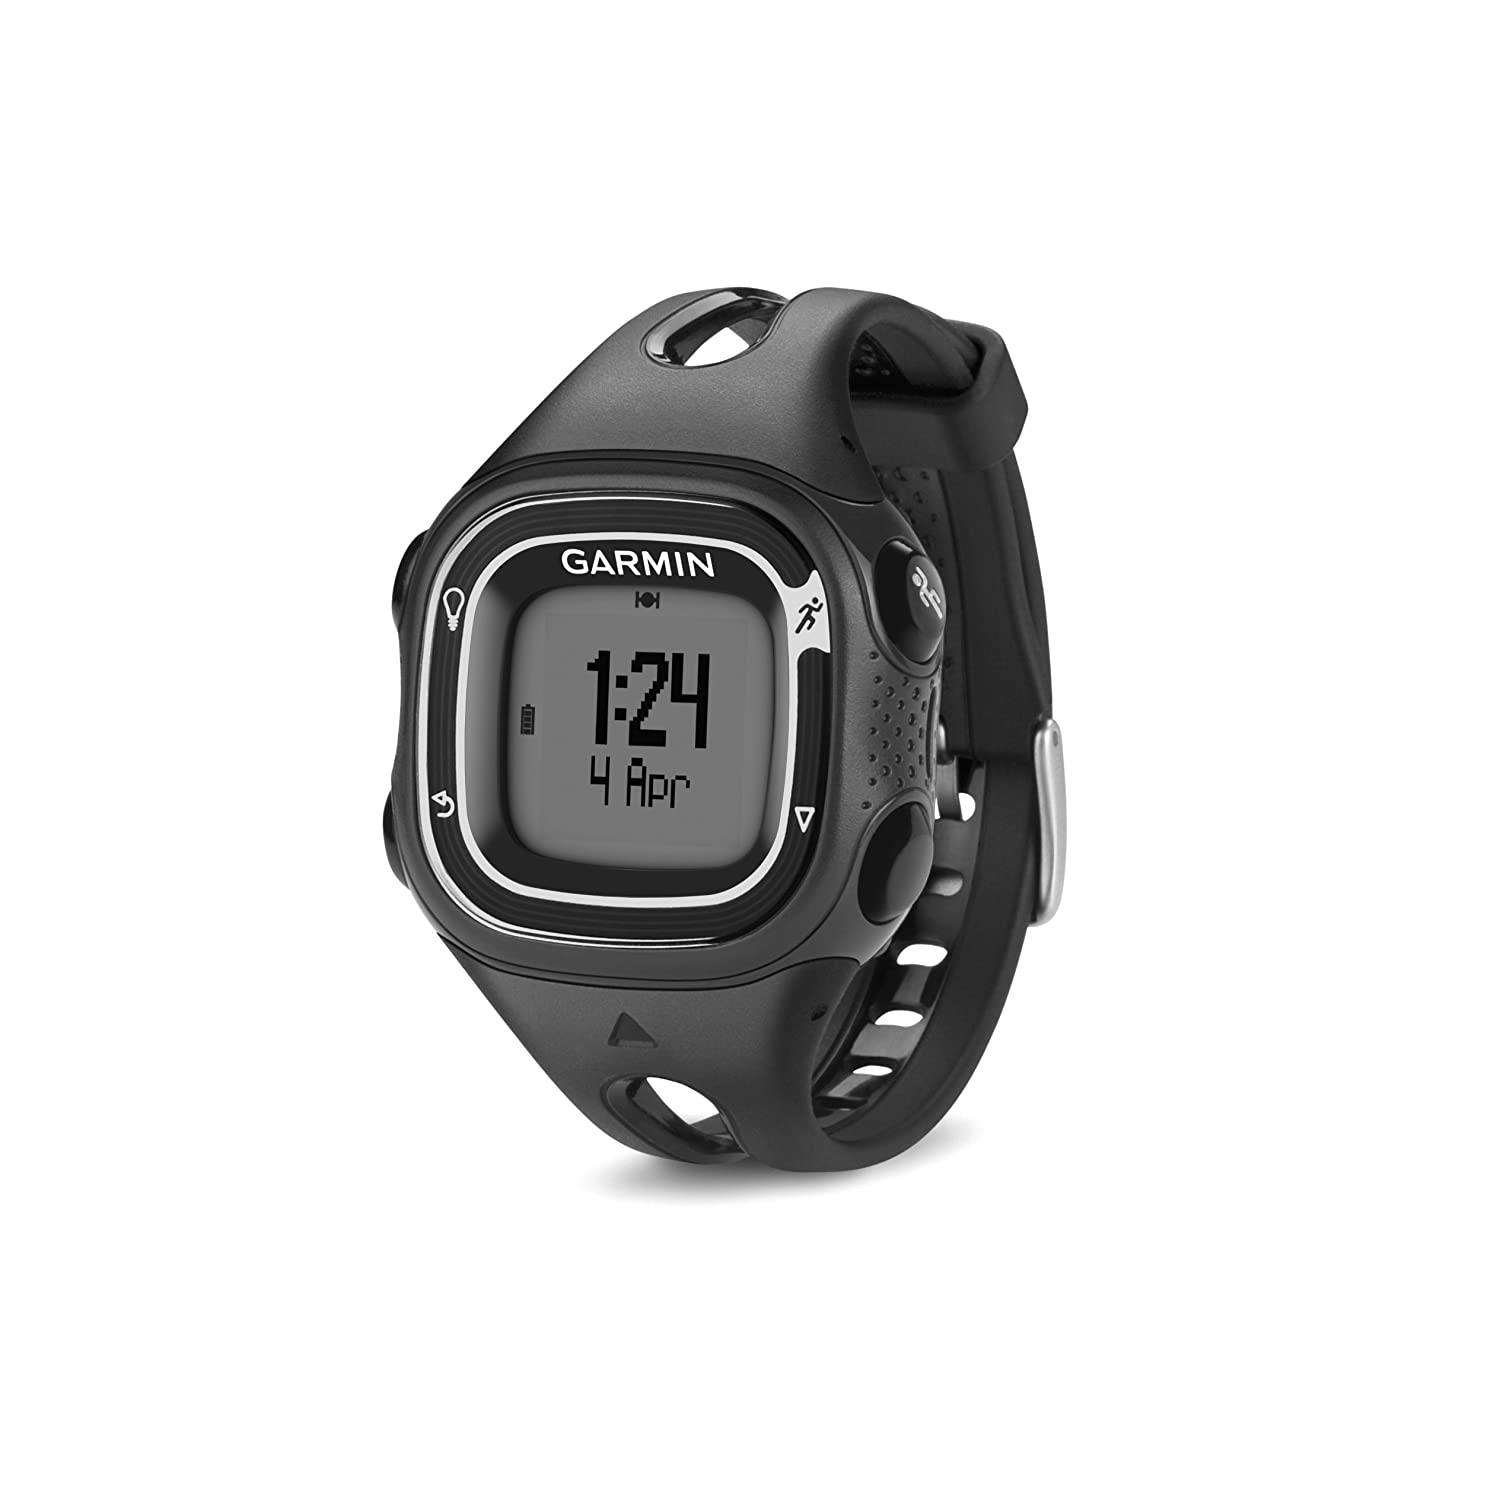 garmin forerunner 10 firmware update 2 2. Black Bedroom Furniture Sets. Home Design Ideas